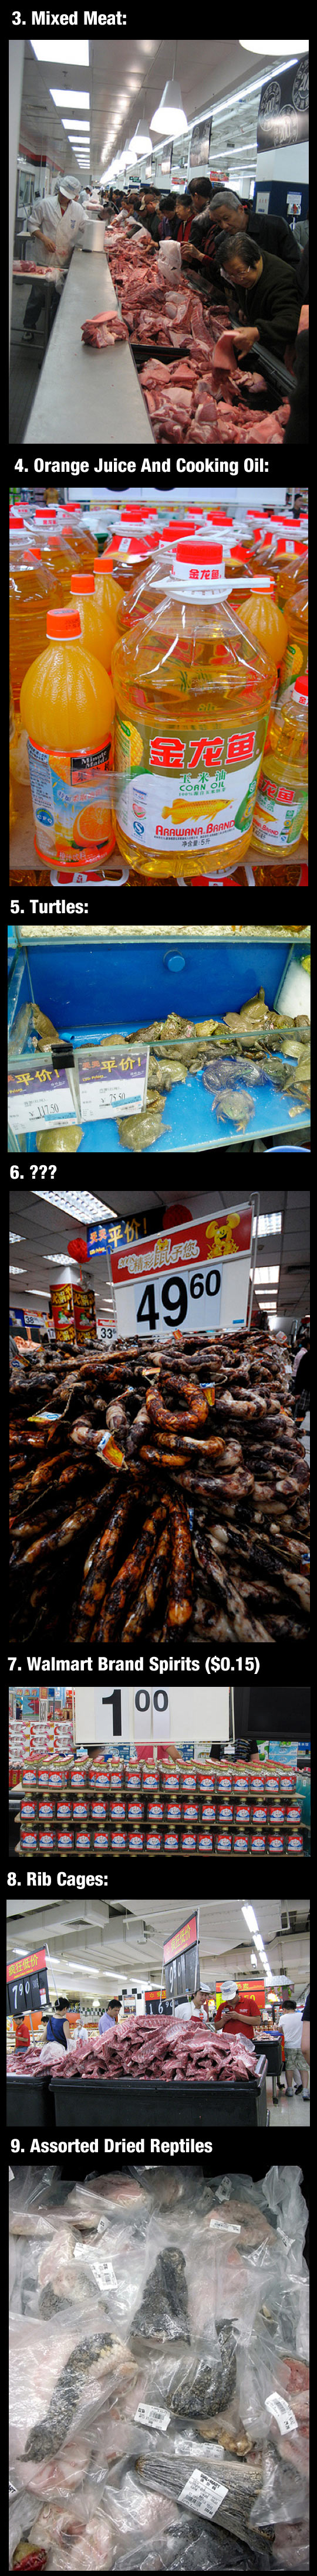 cool-Walmart-China-weird-things-pigs